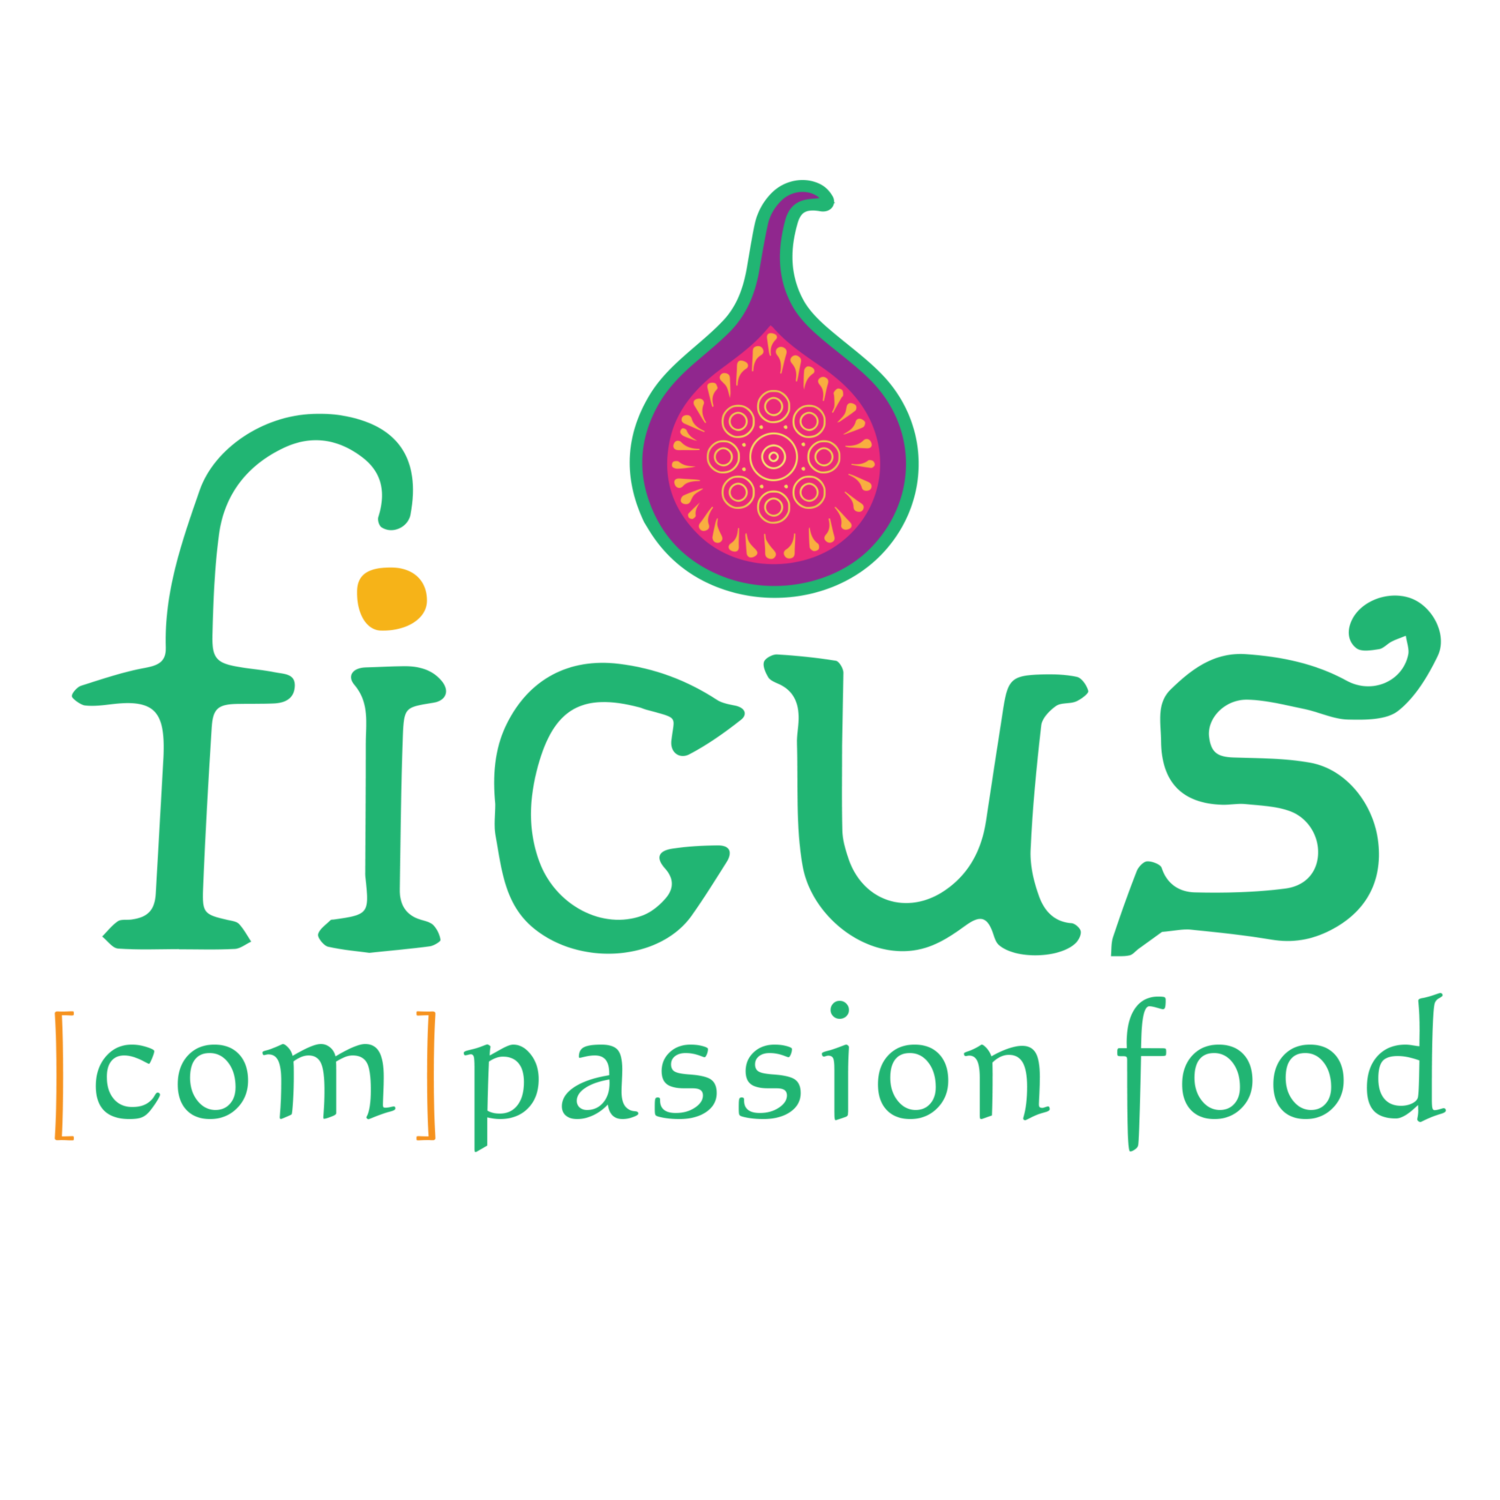 Ficus - (com)passion food